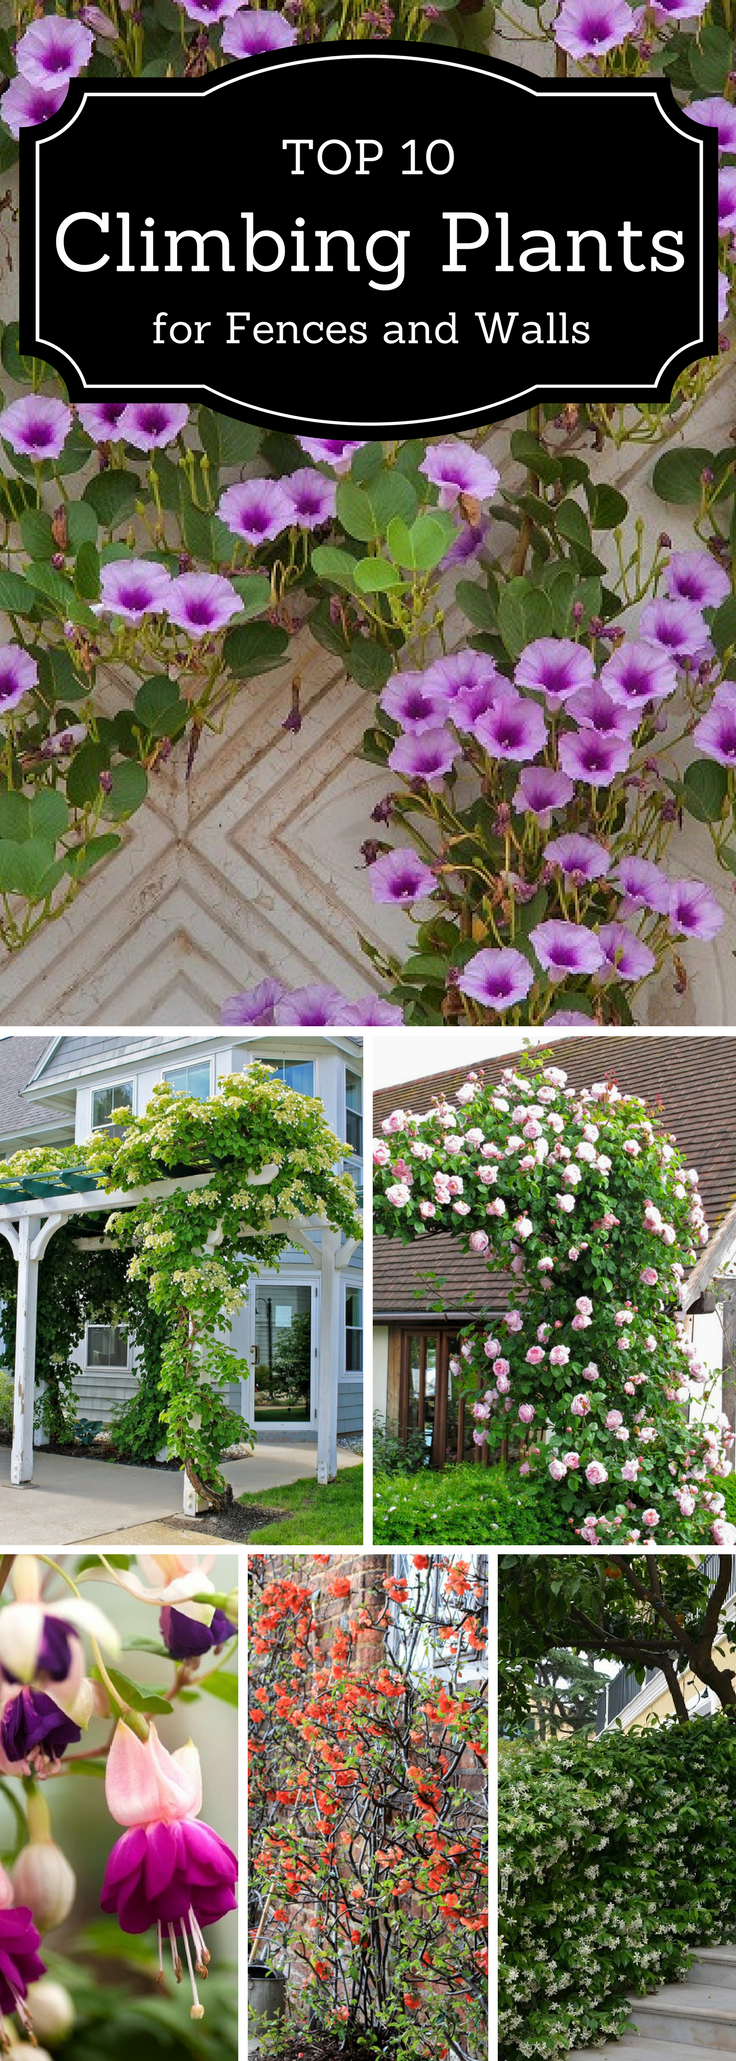 10 Beautiful Climbing Plants for Fences and Walls This is the time when the climbers give the best of them – blooming flowers in white, pink, blue and other colors!This is the time when the climbers give the best of them – blooming flowers in white, pink, blue and other colors!